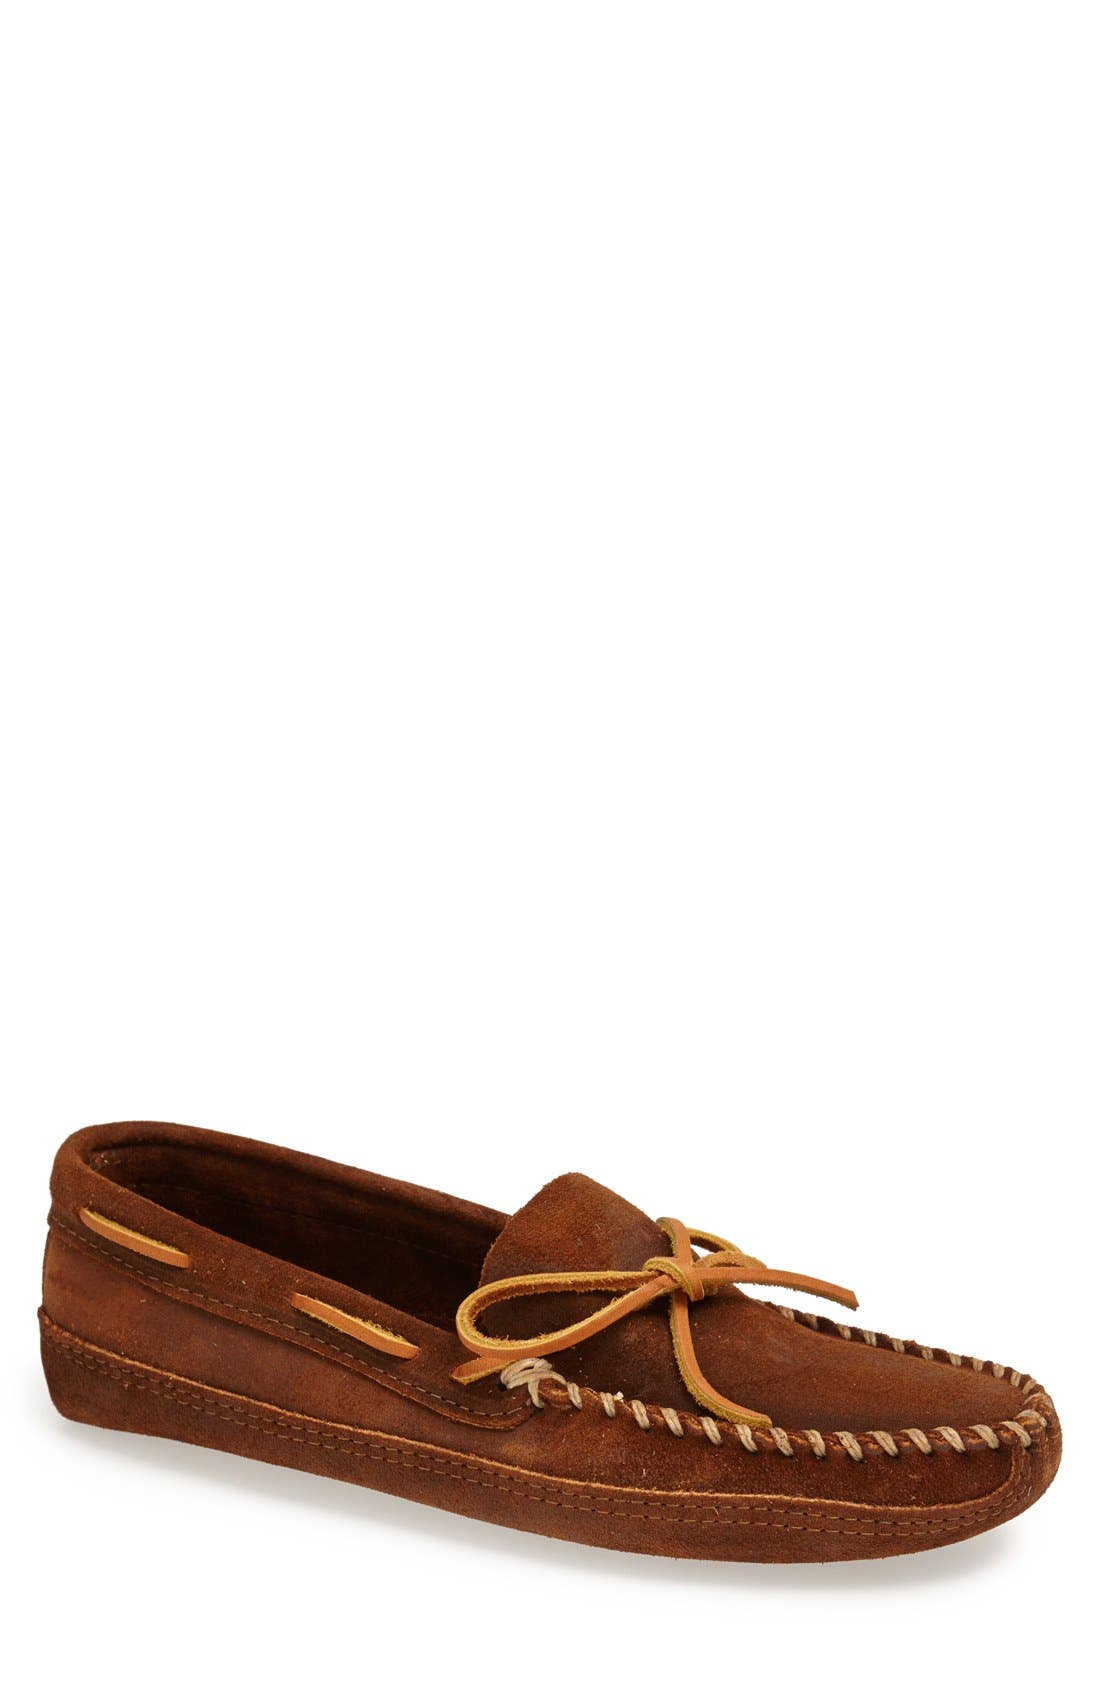 Suede Sole Moccasin,                             Main thumbnail 1, color,                             BROWN